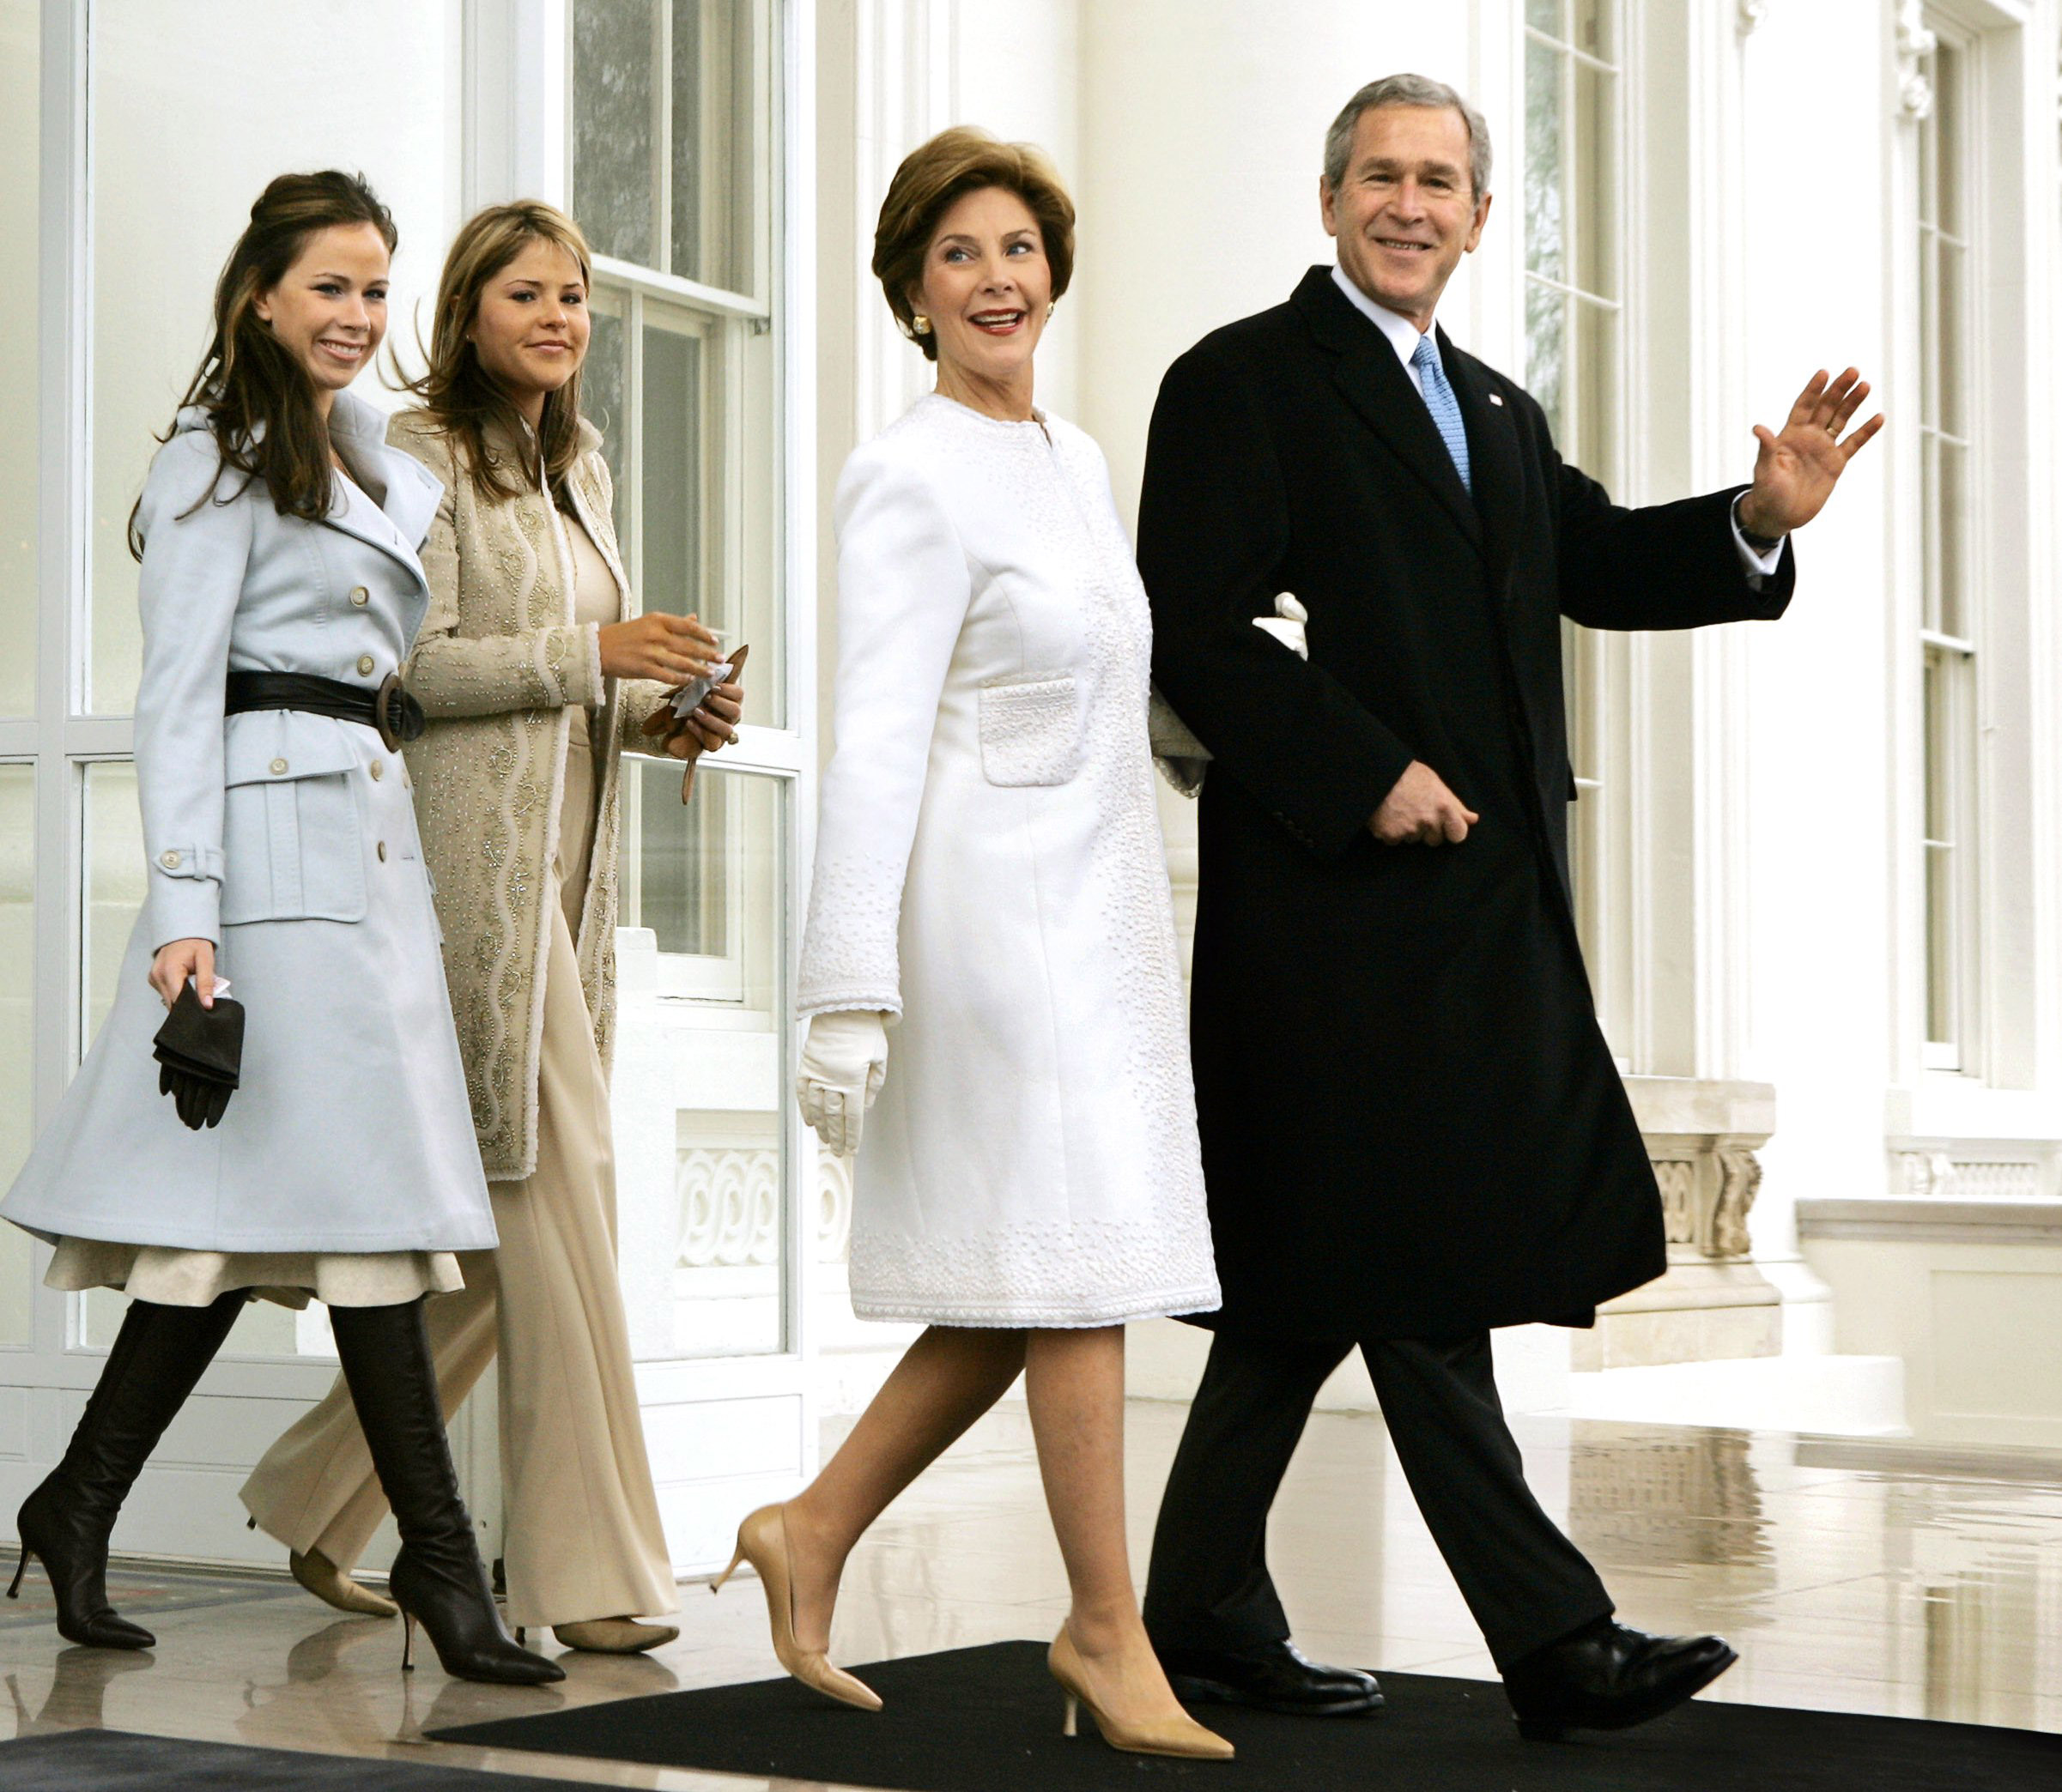 President George W. Bush, first lady Laura Bush and daughters Barbara and Jenna depart the North Portico of the White House for the limousine ride to the Capitol where he will take the Oath of Office and begin his second term, in Washington, Thursday, Jan. 20, 2005.